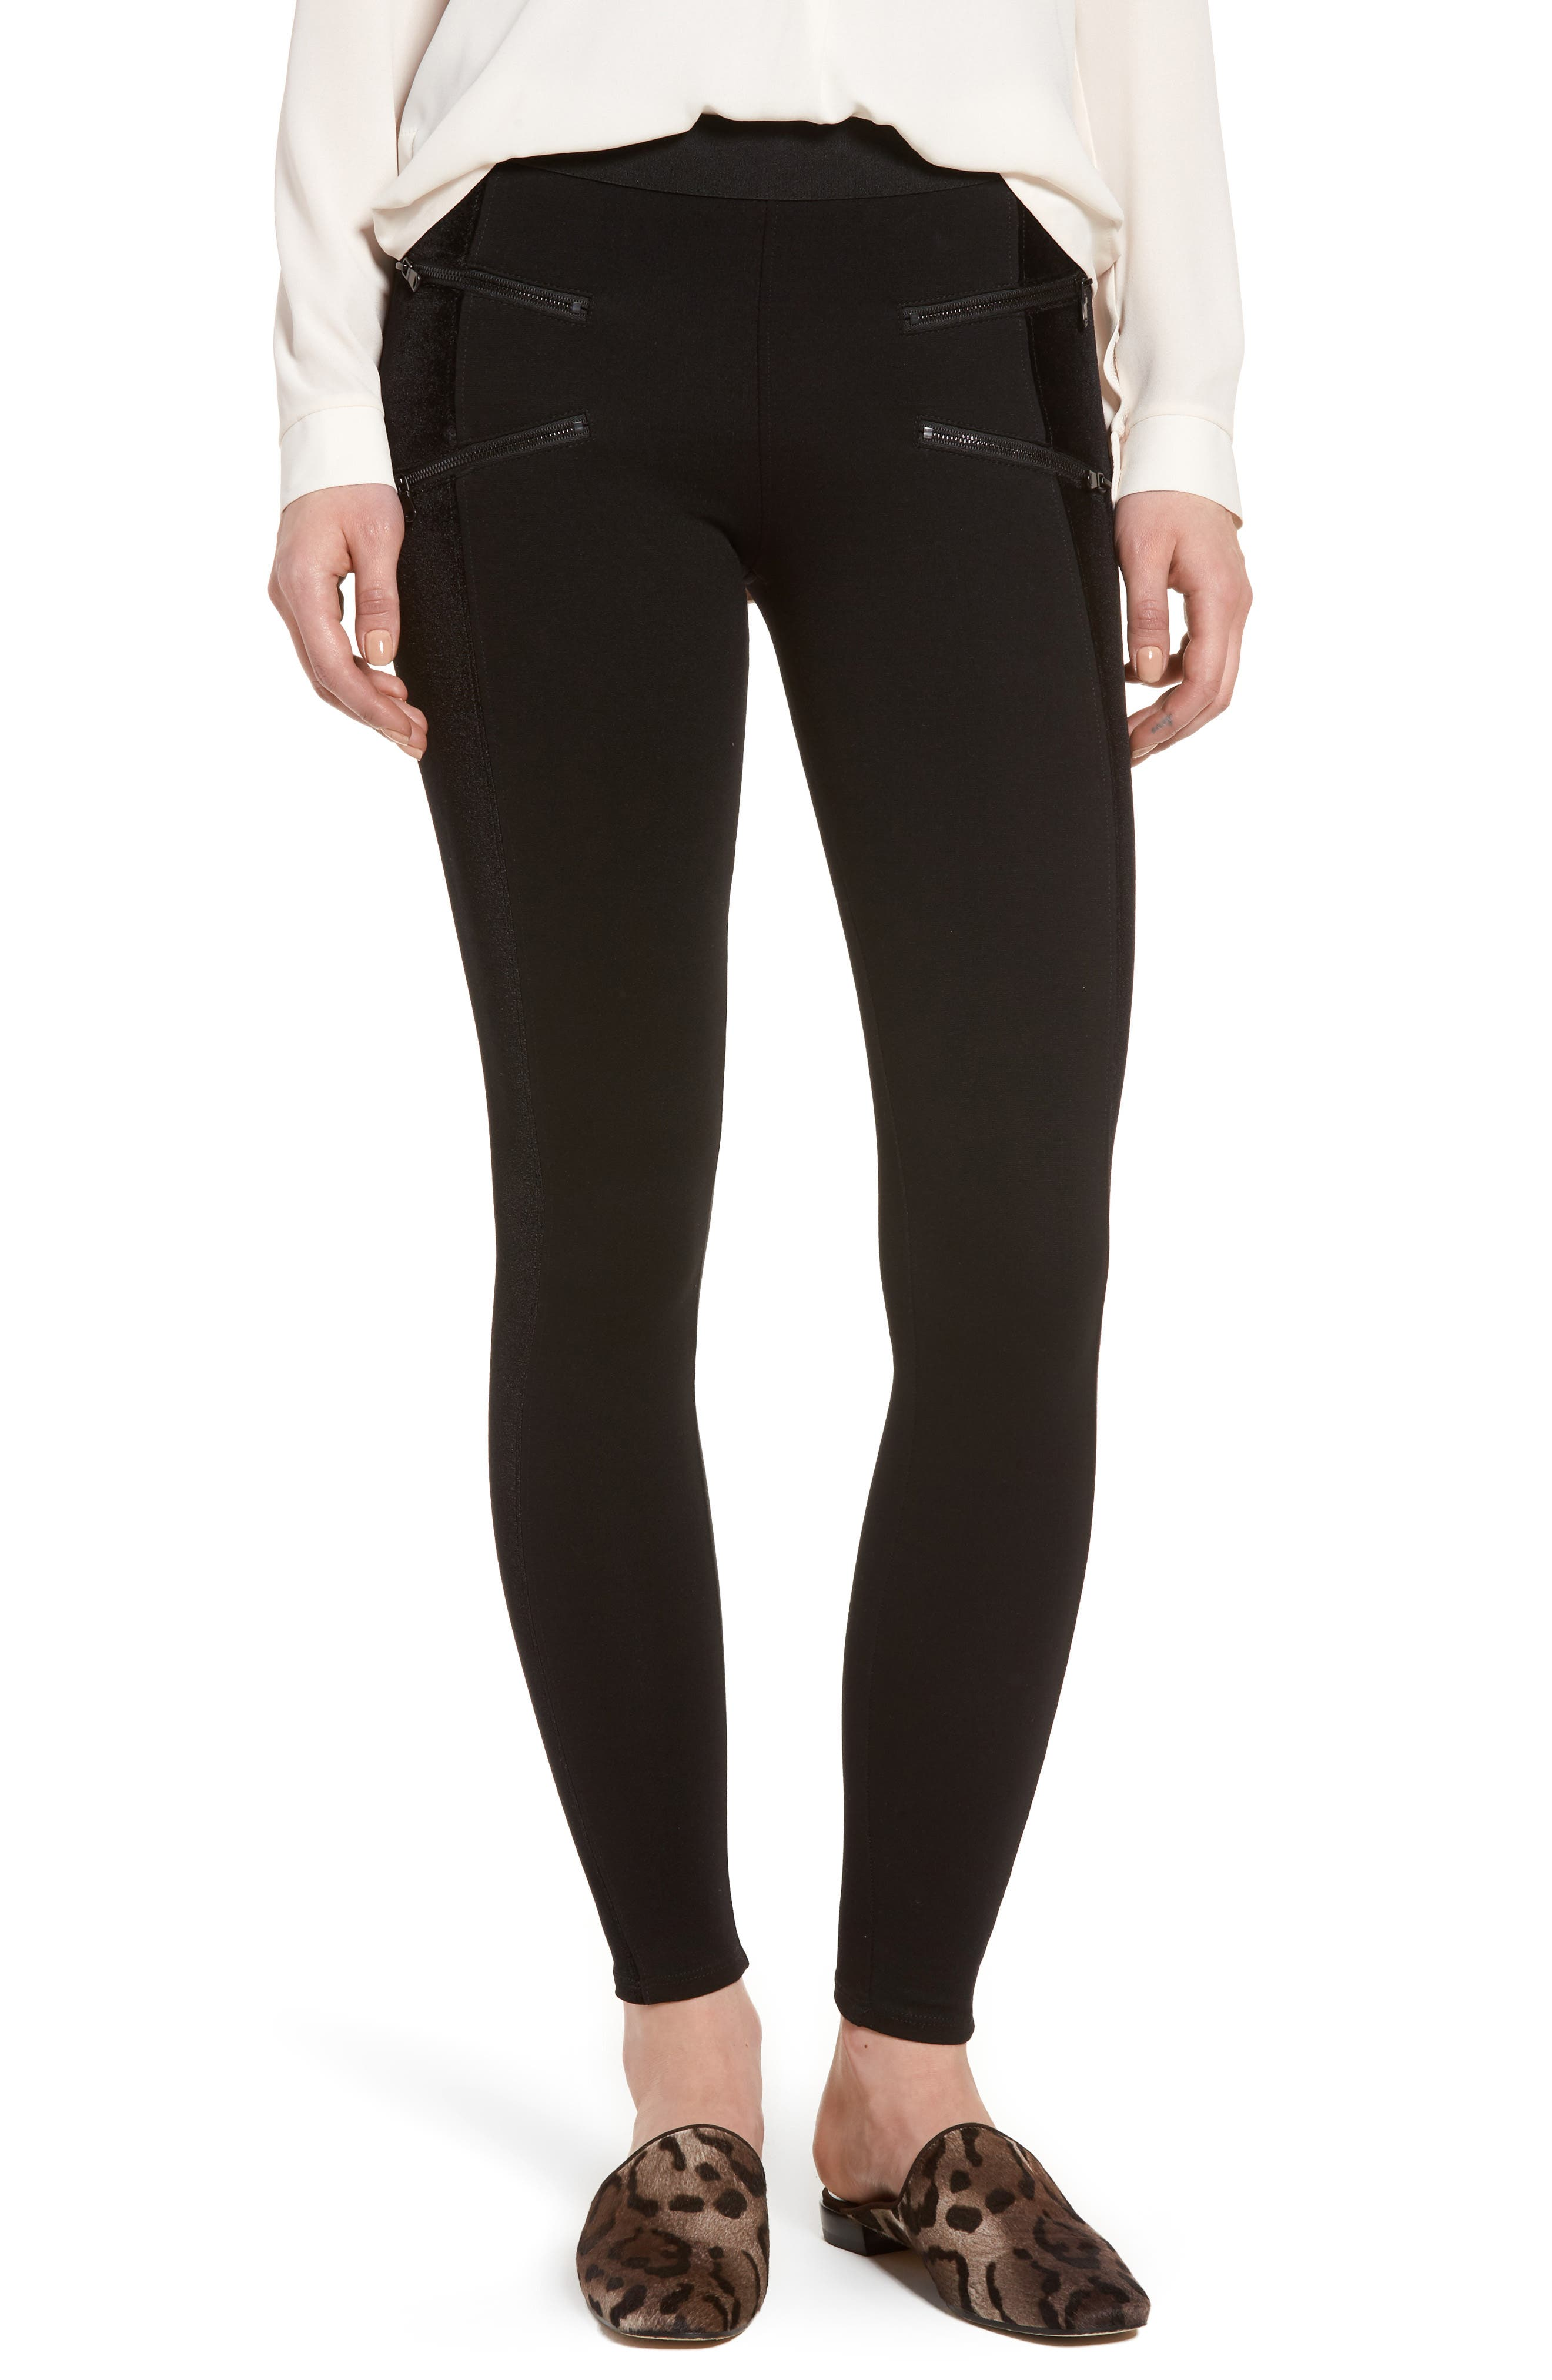 Starburst Zip Combo Leggings,                         Main,                         color, Black